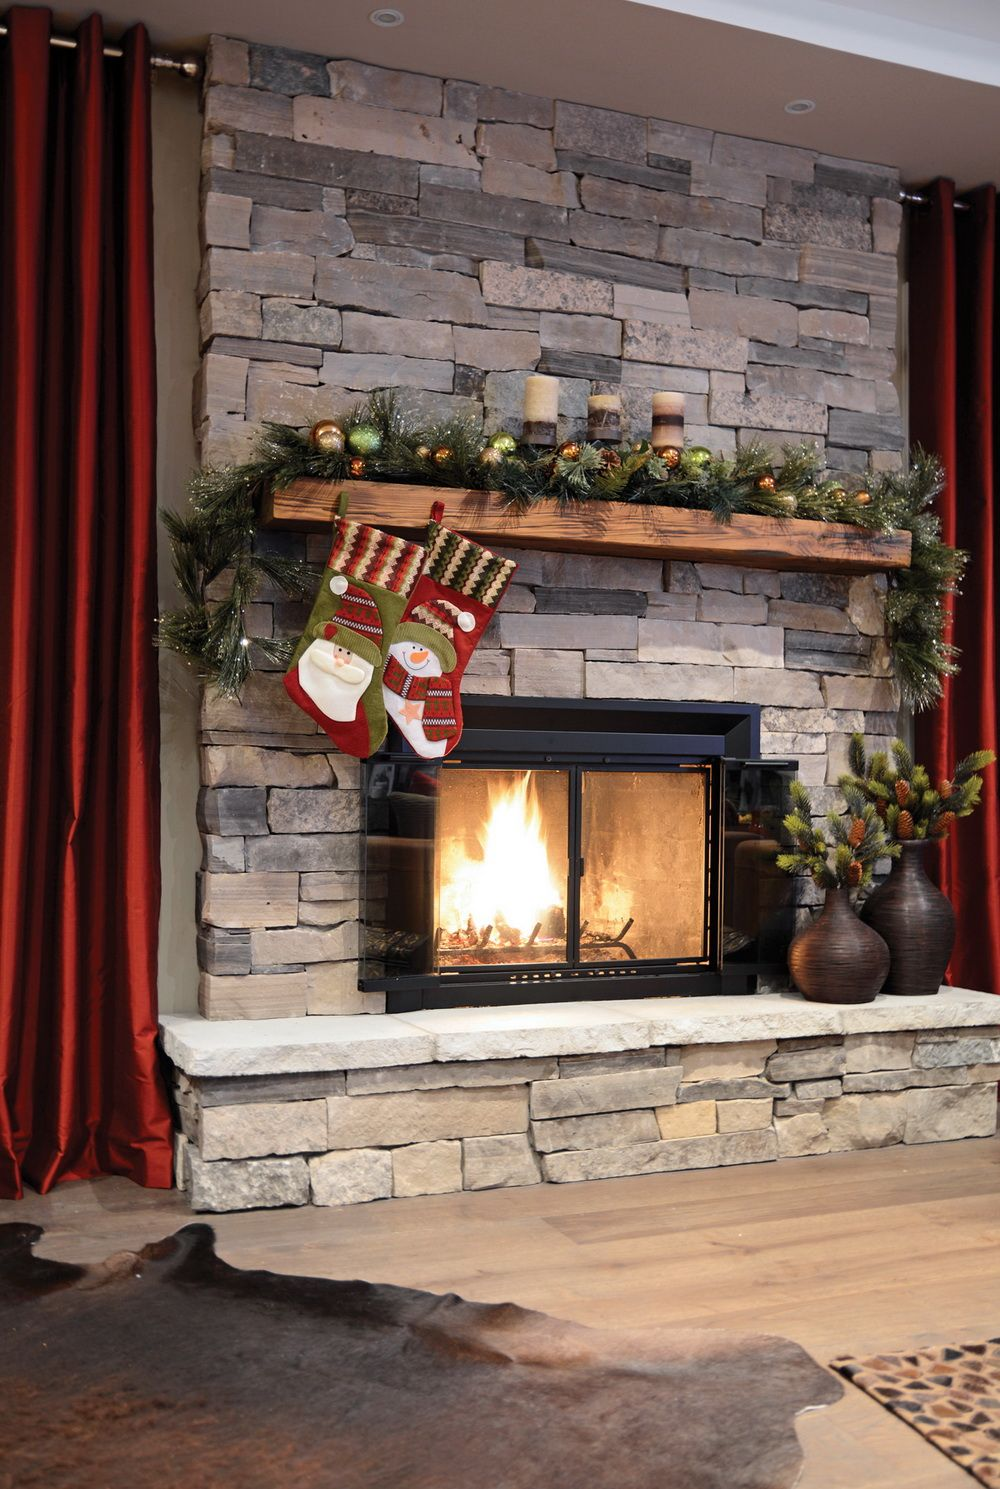 Holiday Fireplace Decorations - Stone Selex - St. Clair Ledge Stone, Natural Stone Veneer